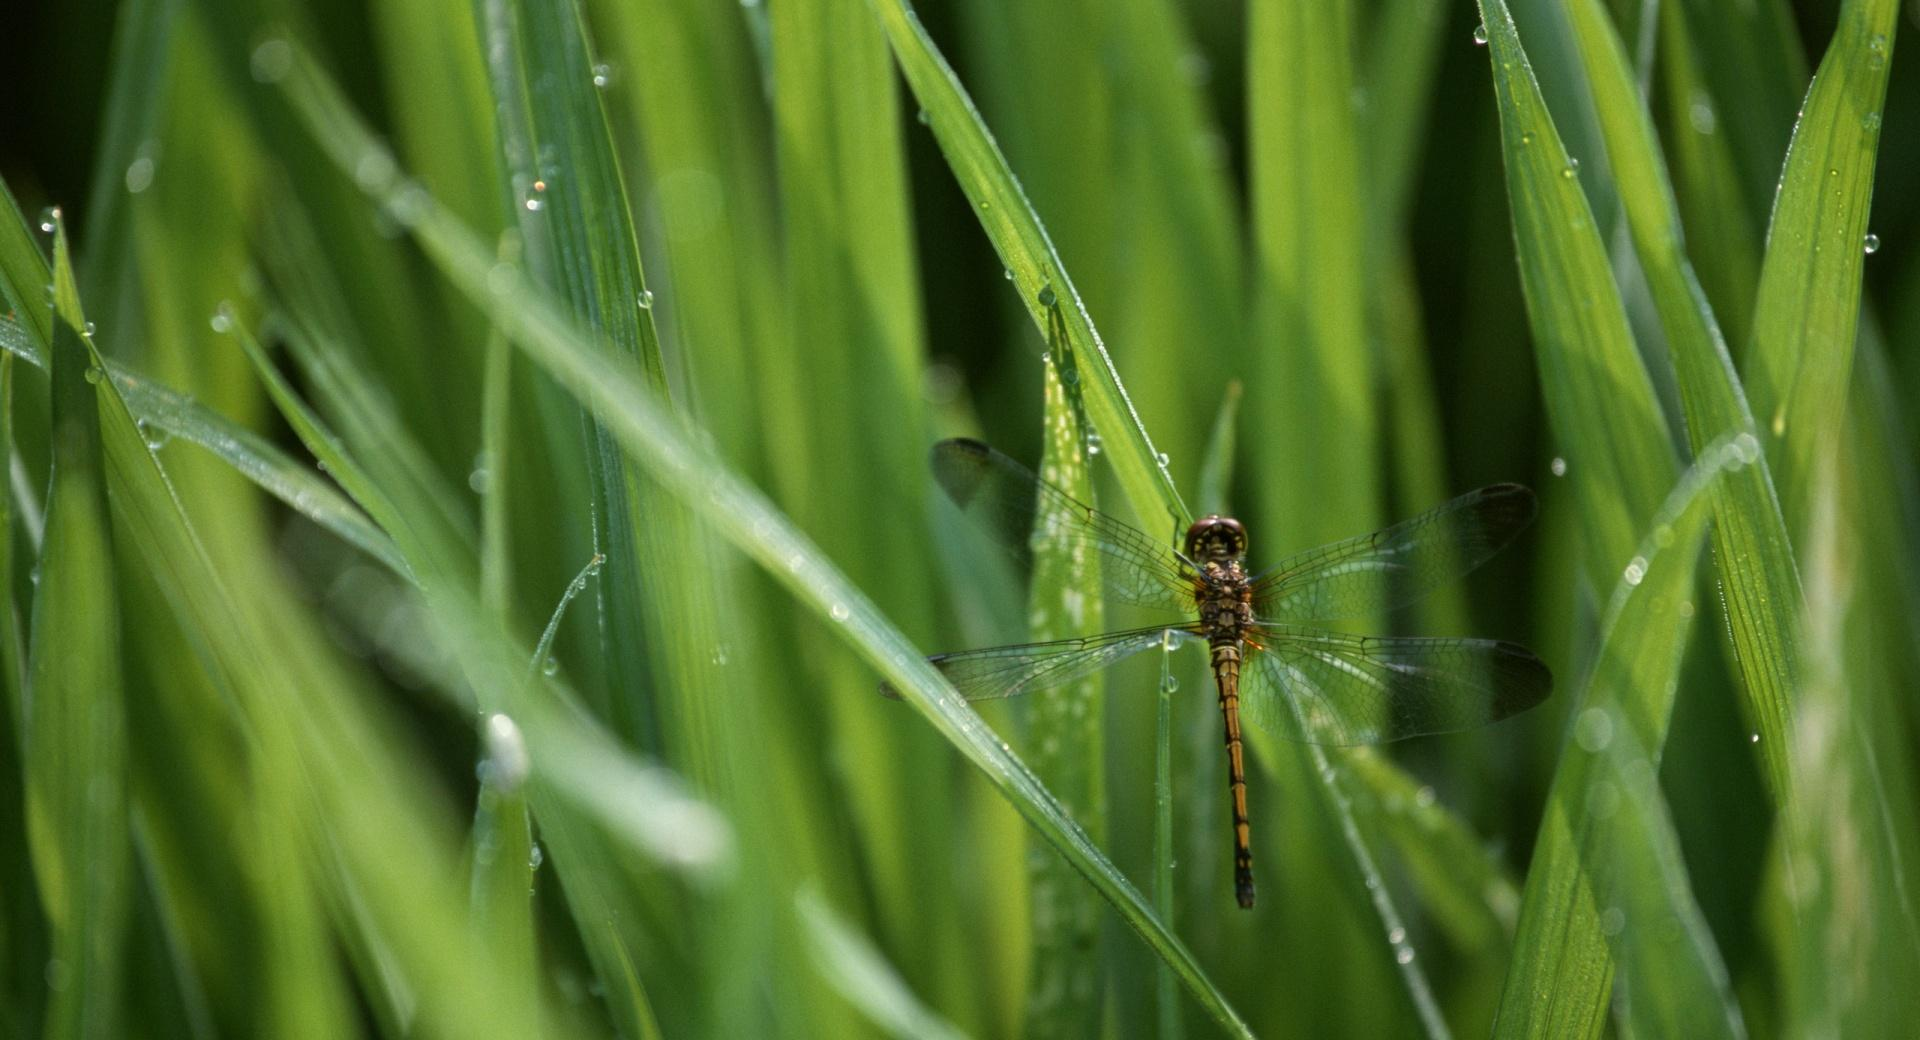 Dragonfly In The Grass wallpapers HD quality